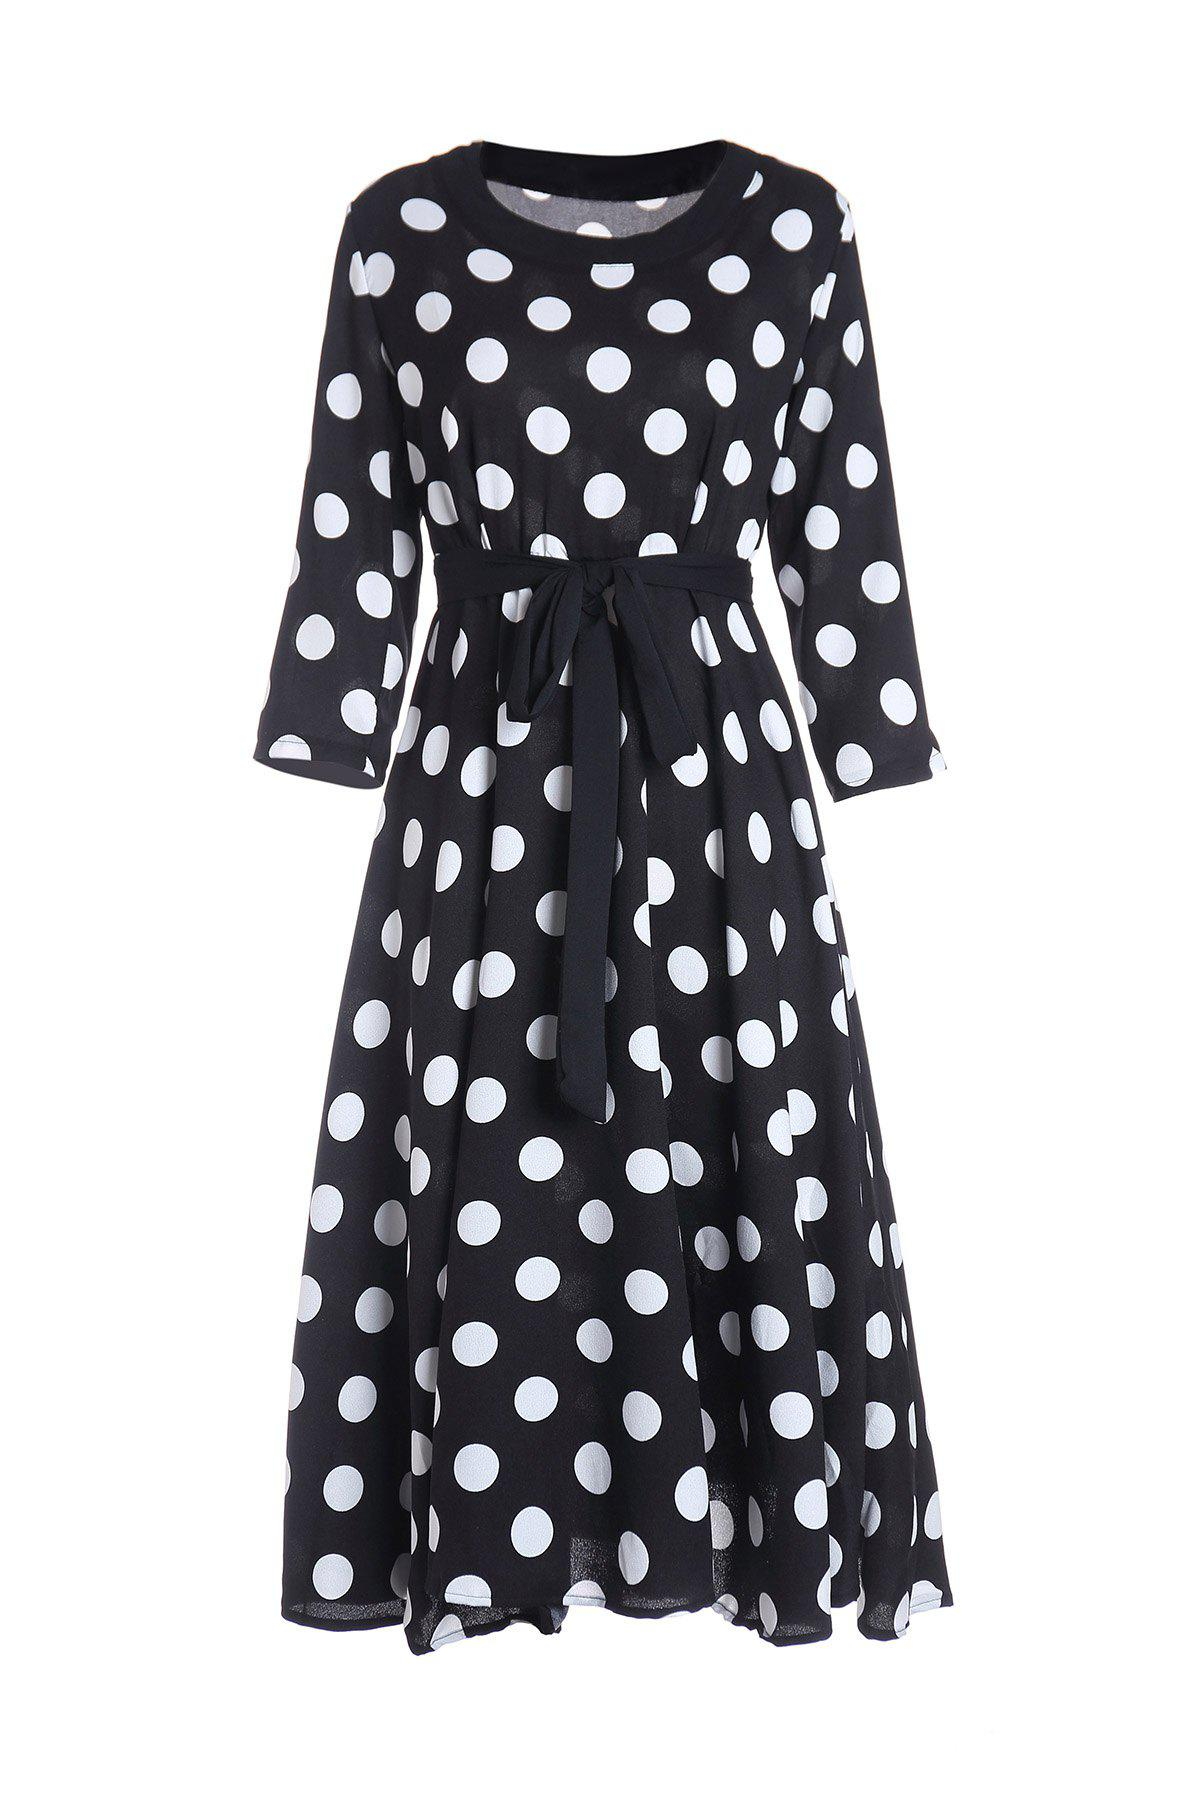 3/4 Sleeves Scoop Neck Polka Dot Pattern Ladylike Dress For Women - BLACK L